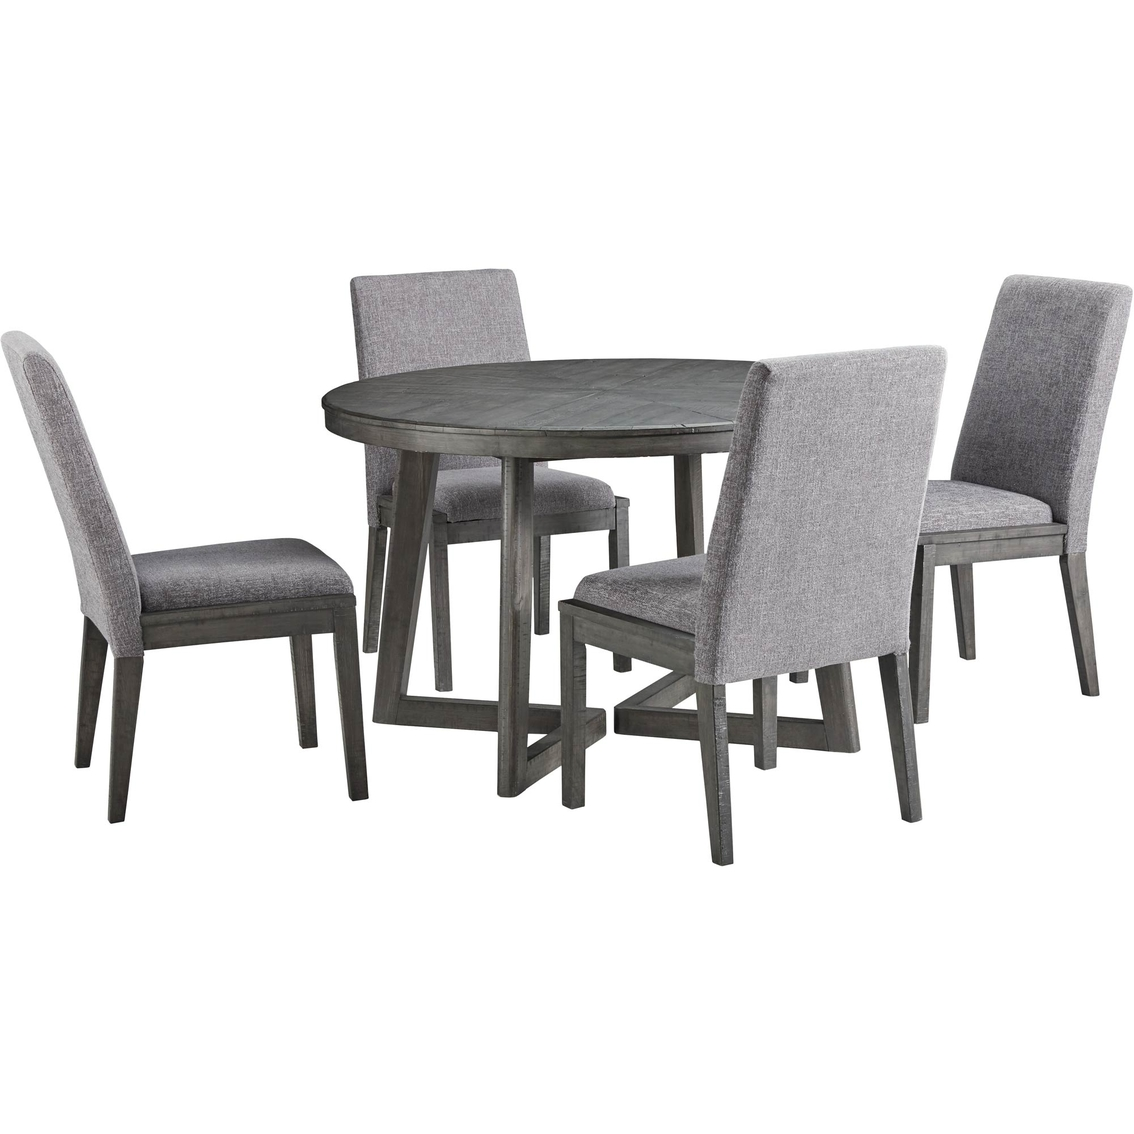 Round Dining Table With 4 Chairs: Signature Design By Ashley Besteneer Round Table With 4